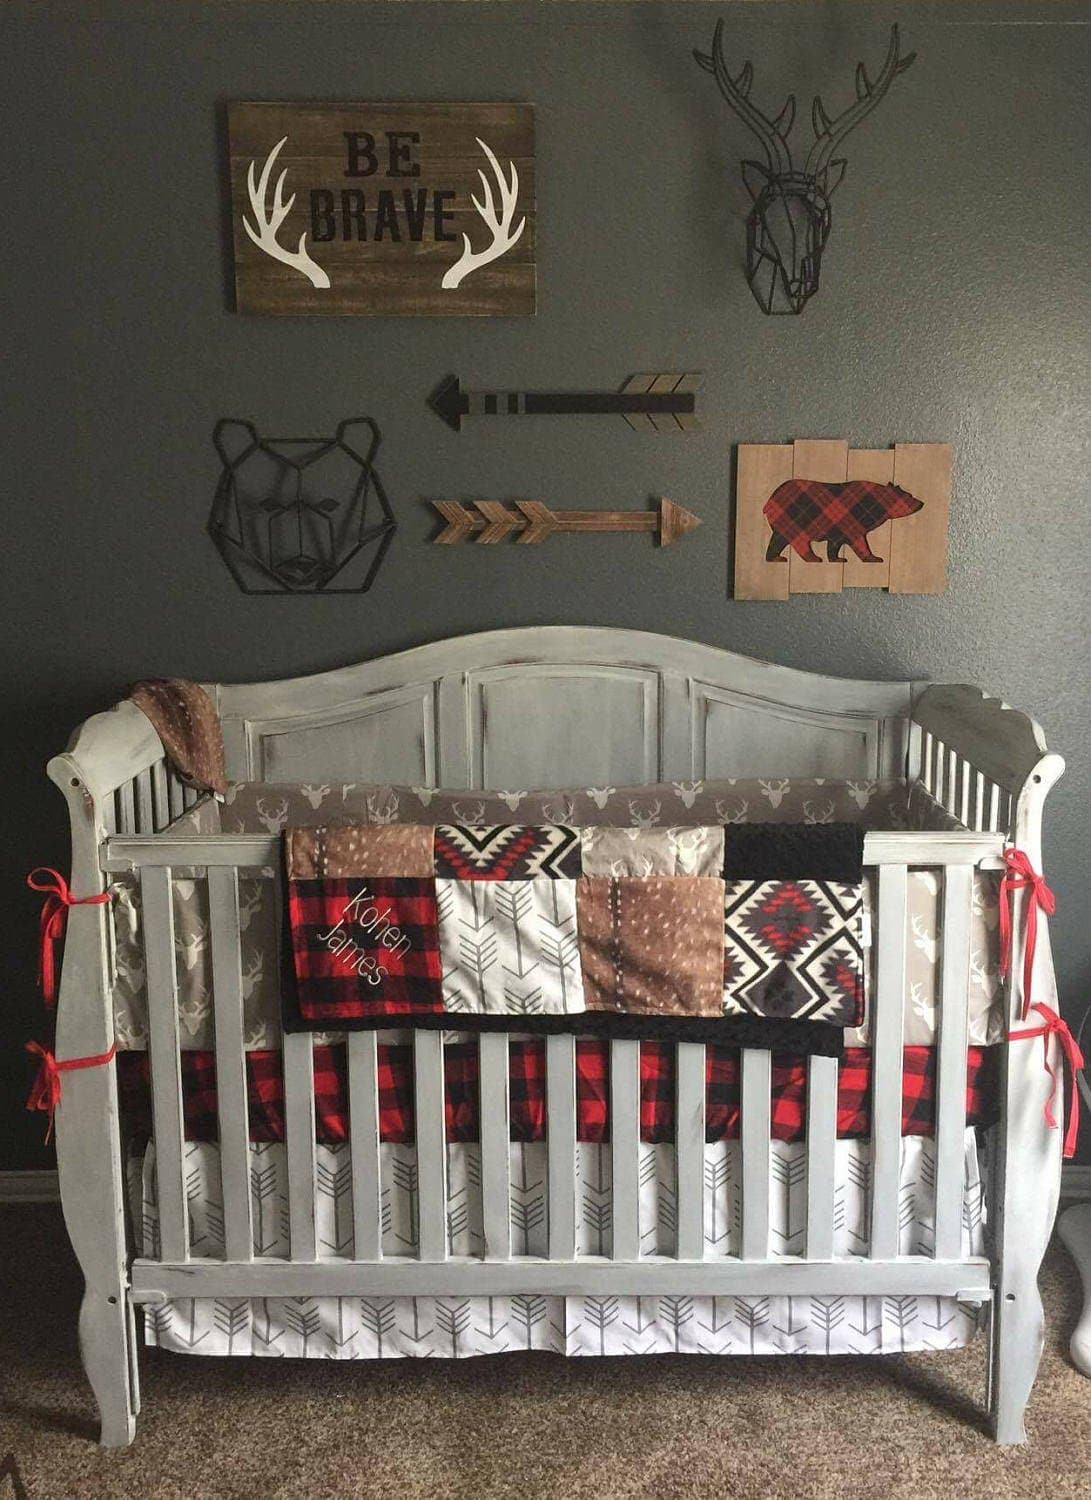 2 Day Ship Boy Crib Bedding- Buck, Fawn, Arrow, Aztec, Red Black Buffalo Check, Woodland Collection